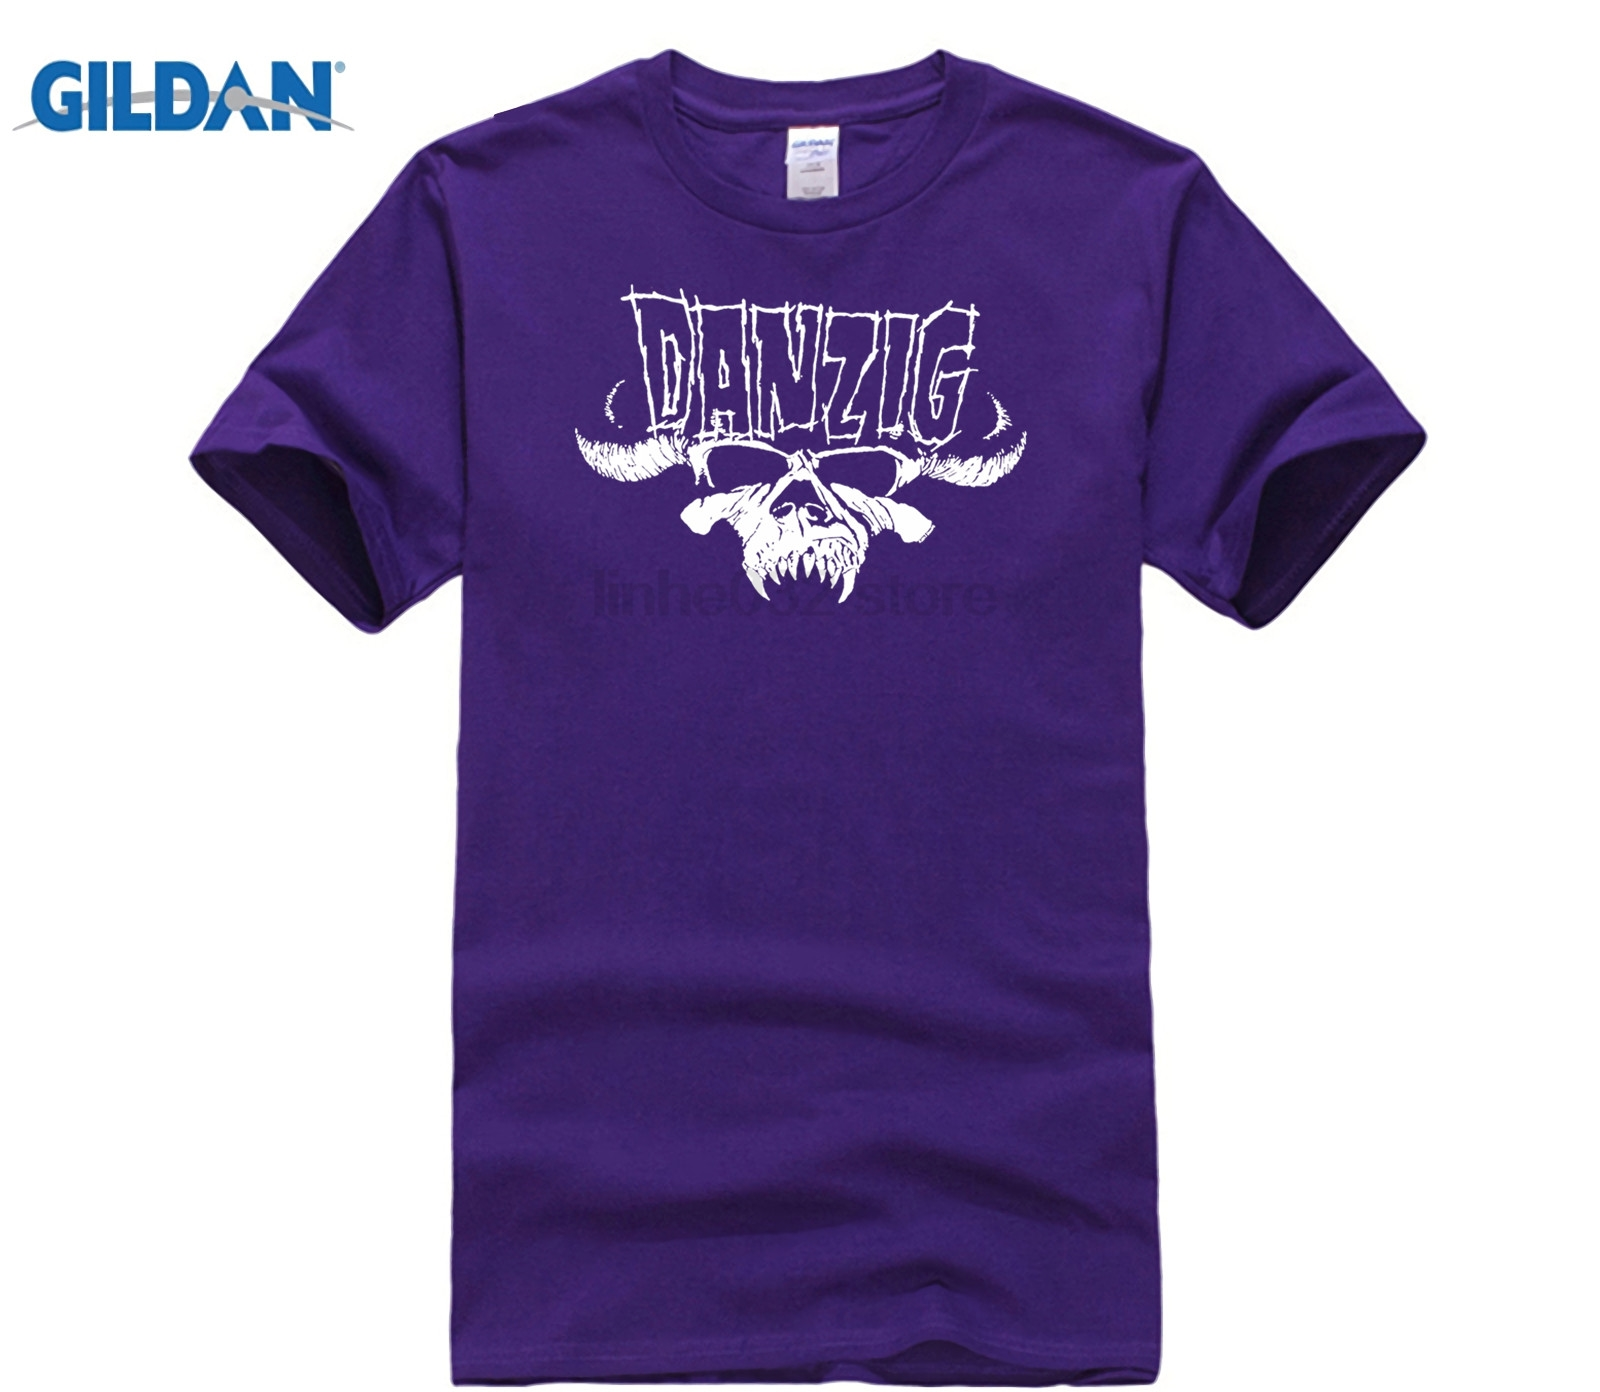 DILDAN 2018 New Pure Cotton s Hip Hop Fashion MensT Shirt Pop Cotton Man Men 39 s Danzig Skull and Regular Shirt in T Shirts from Men 39 s Clothing